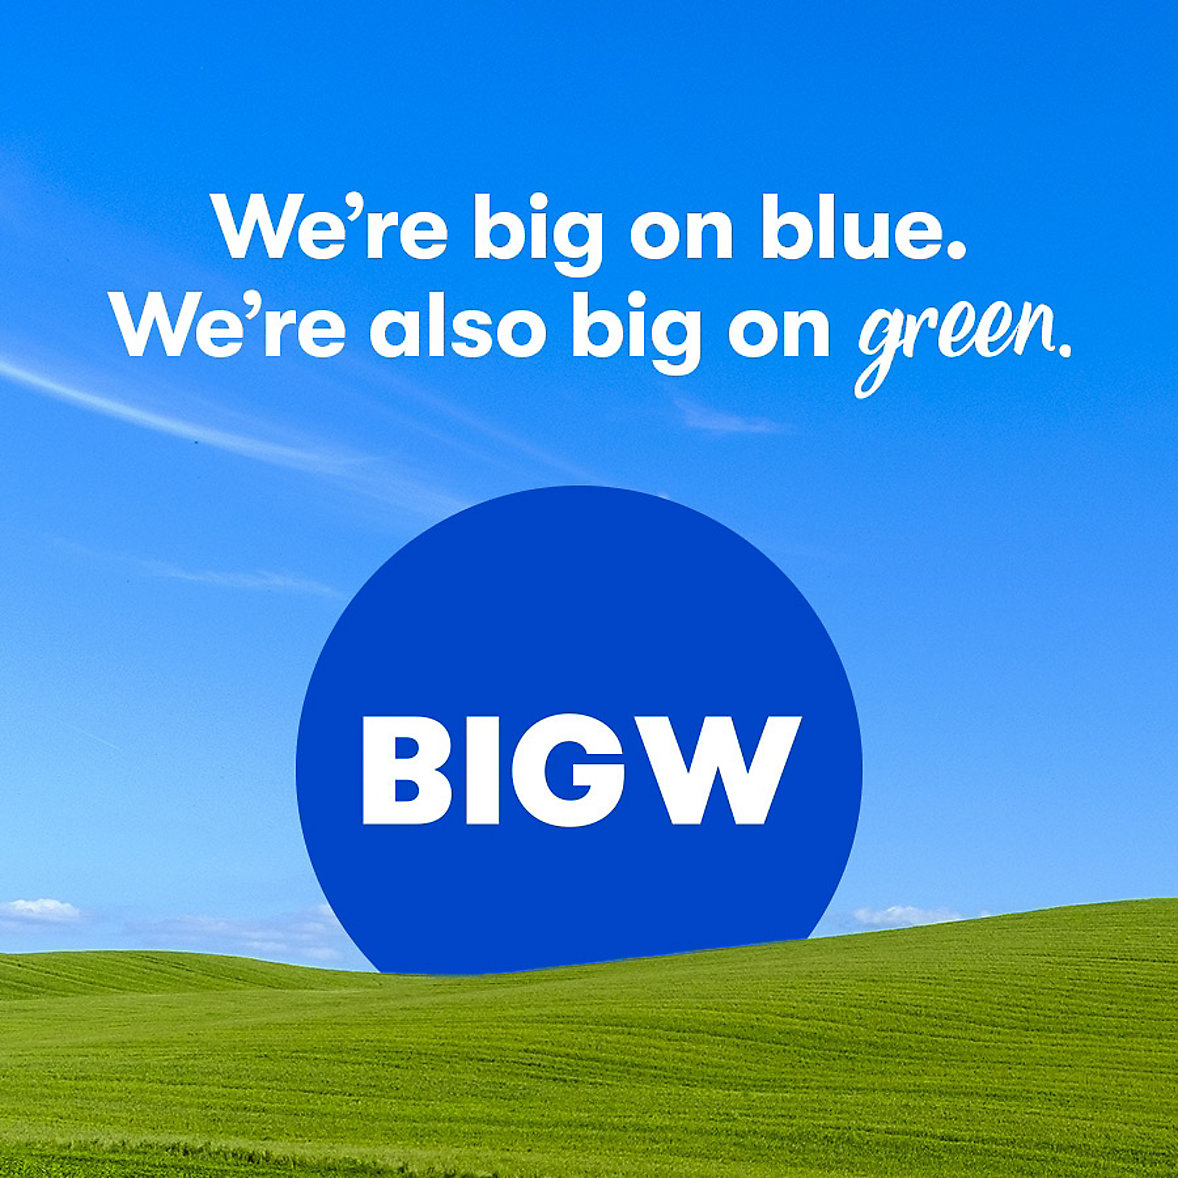 We're big on blue. We're also big on green.